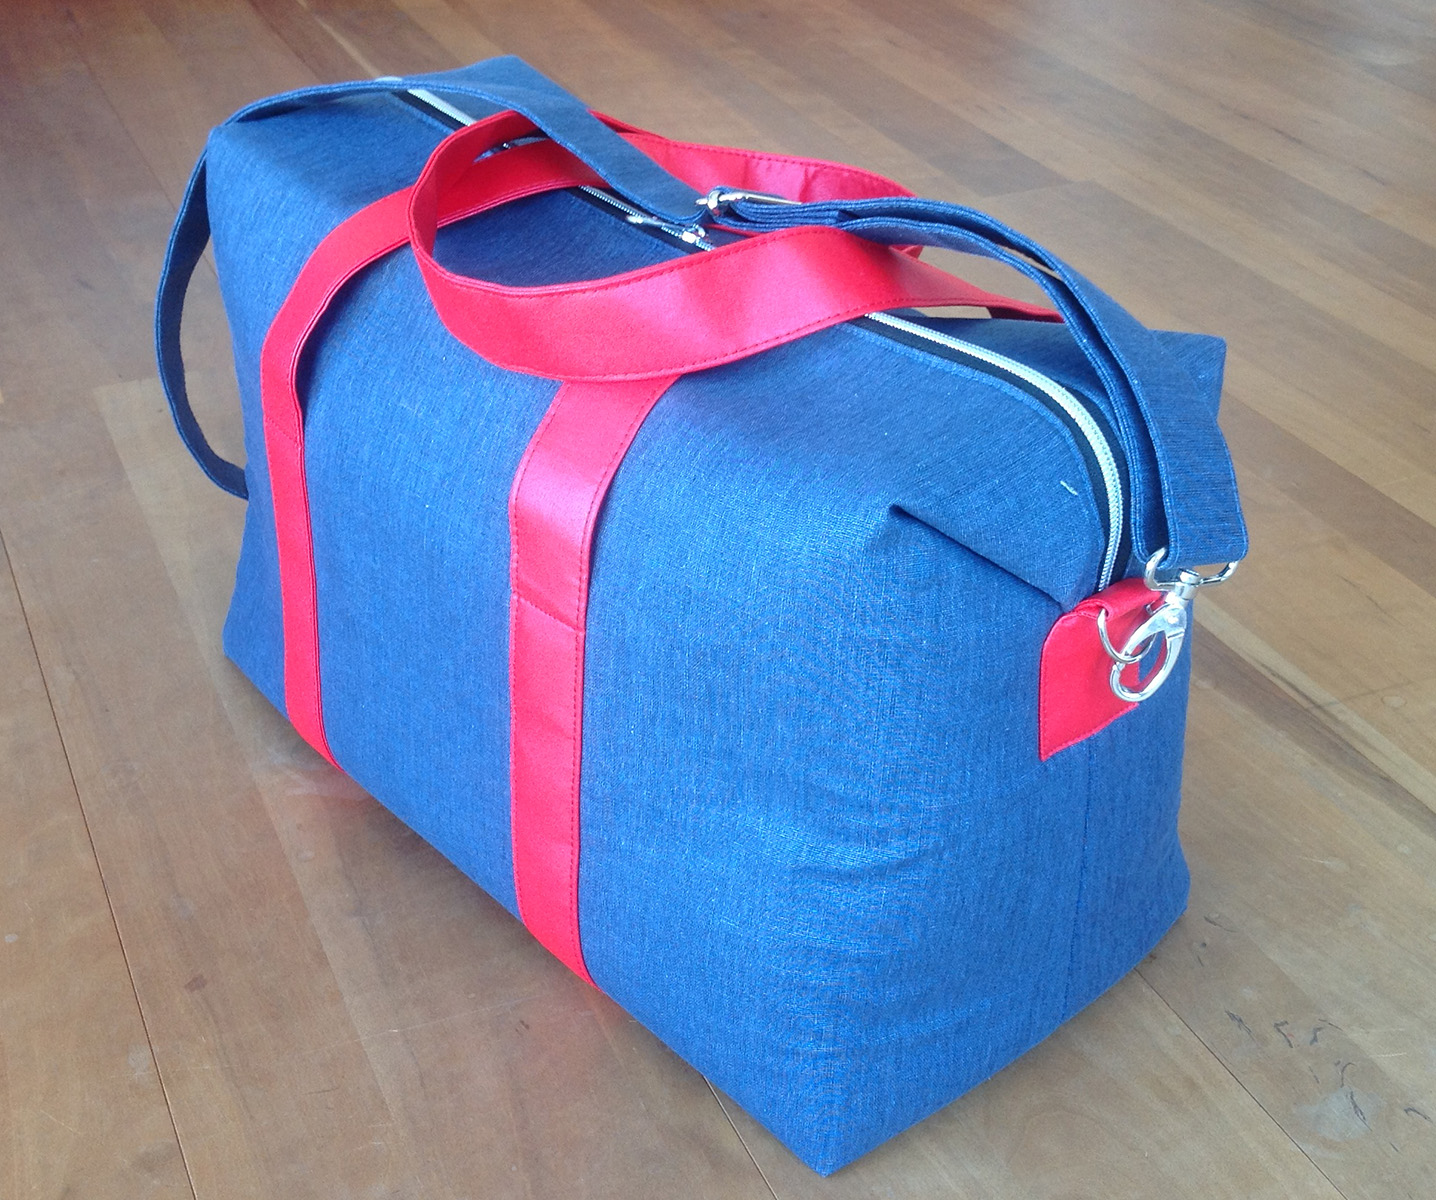 Sew Sweetness Emblem Duffle Bag, sewn by Barbara